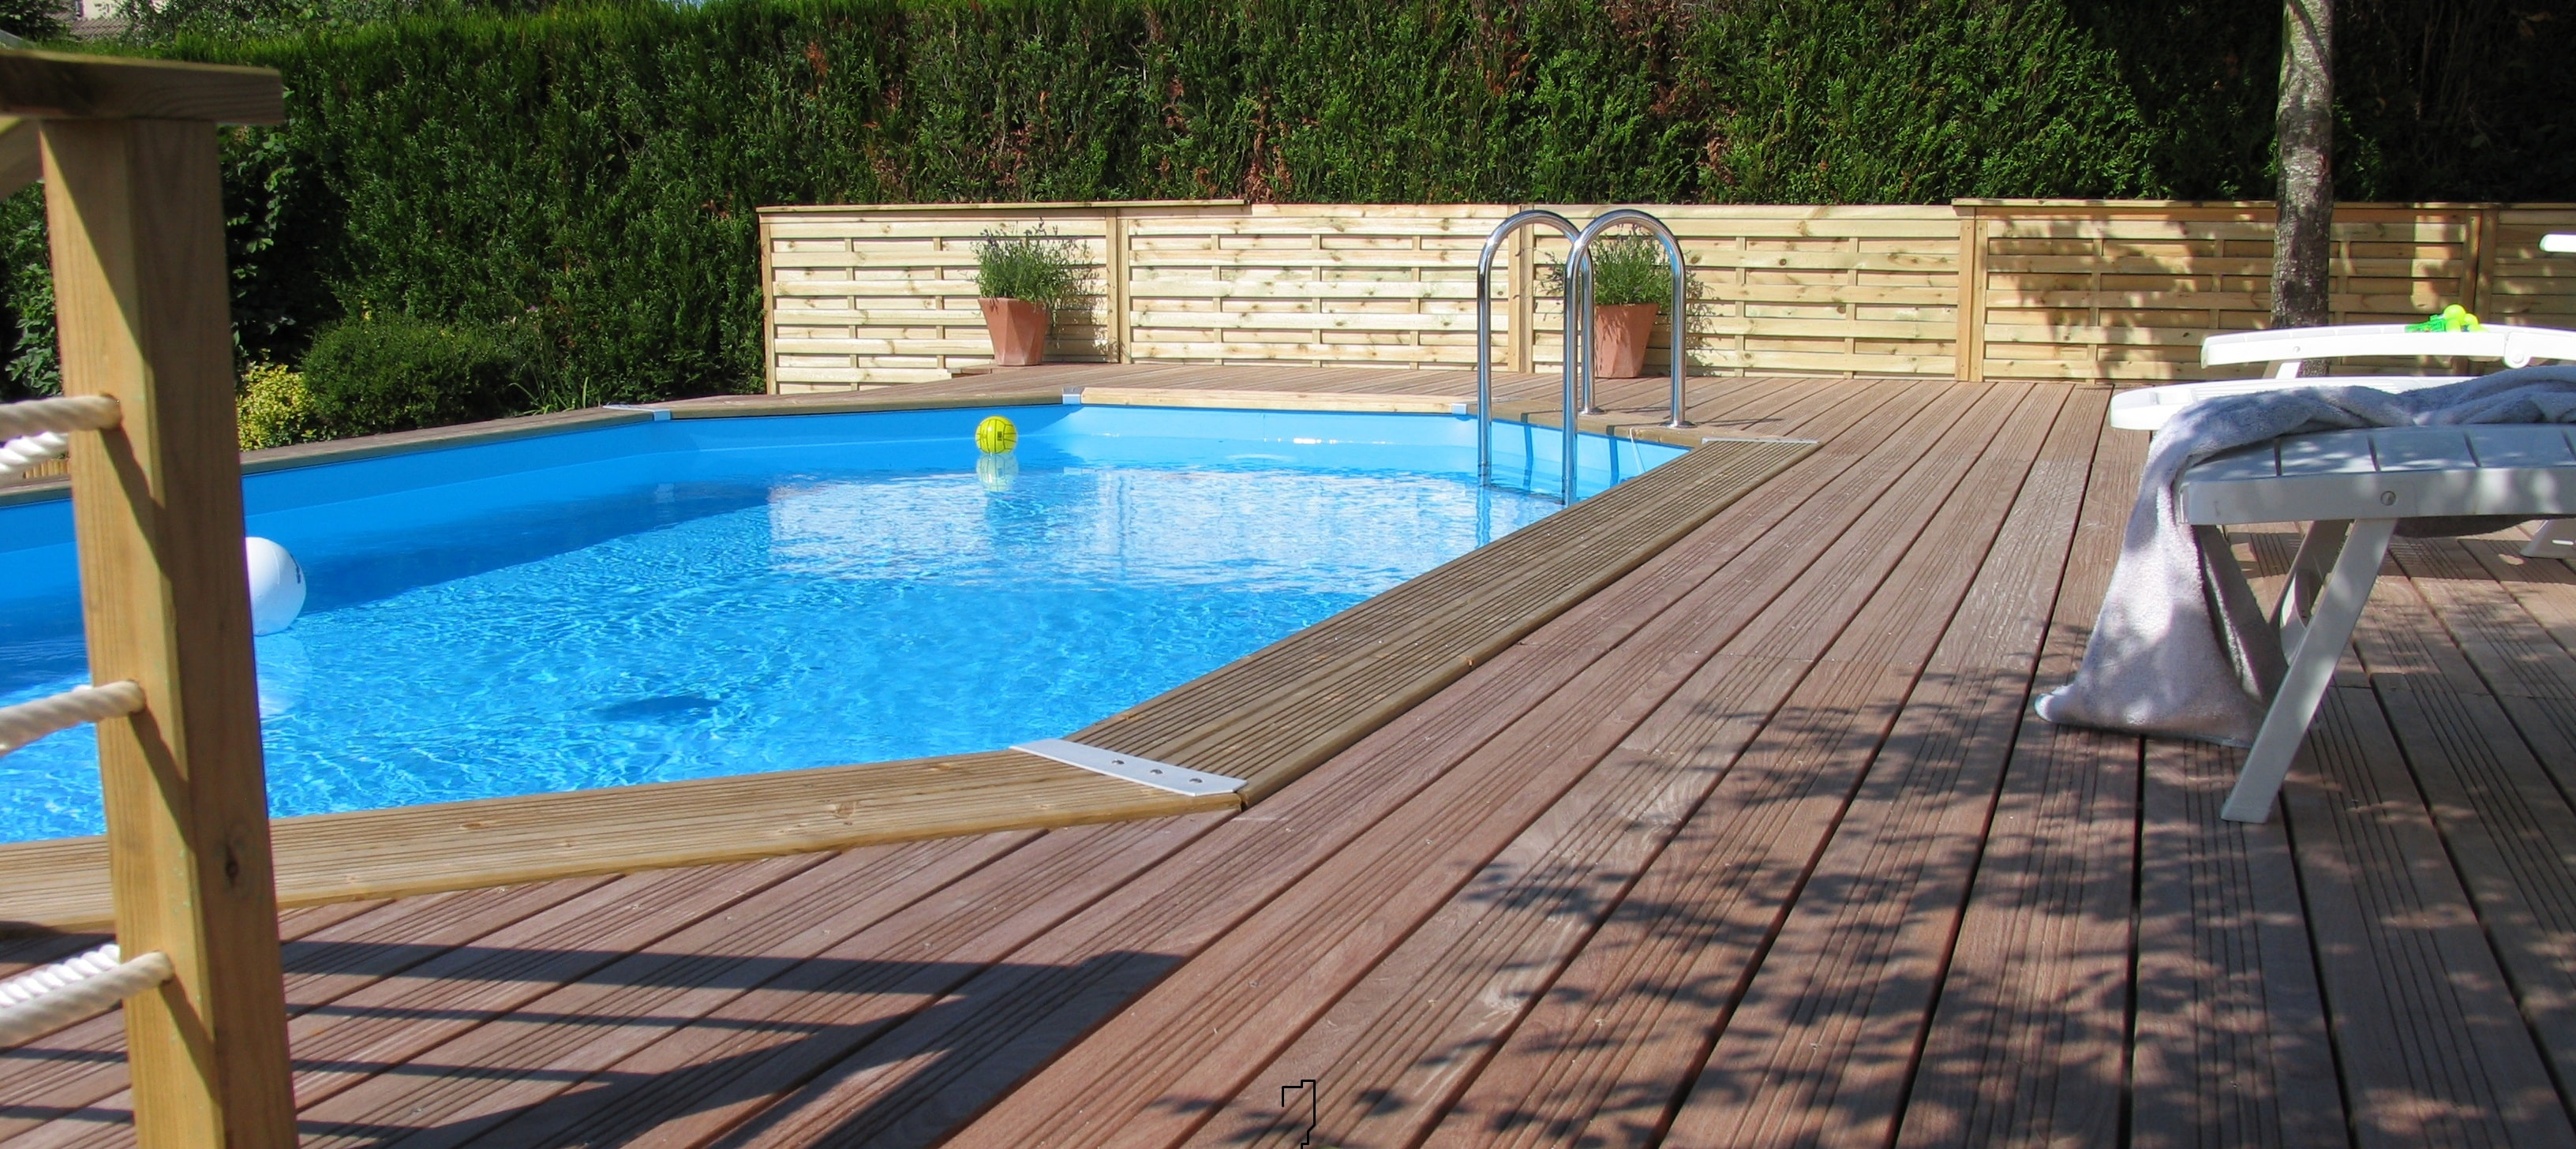 Monter une piscine en bois maison design for Monter une piscine en bois